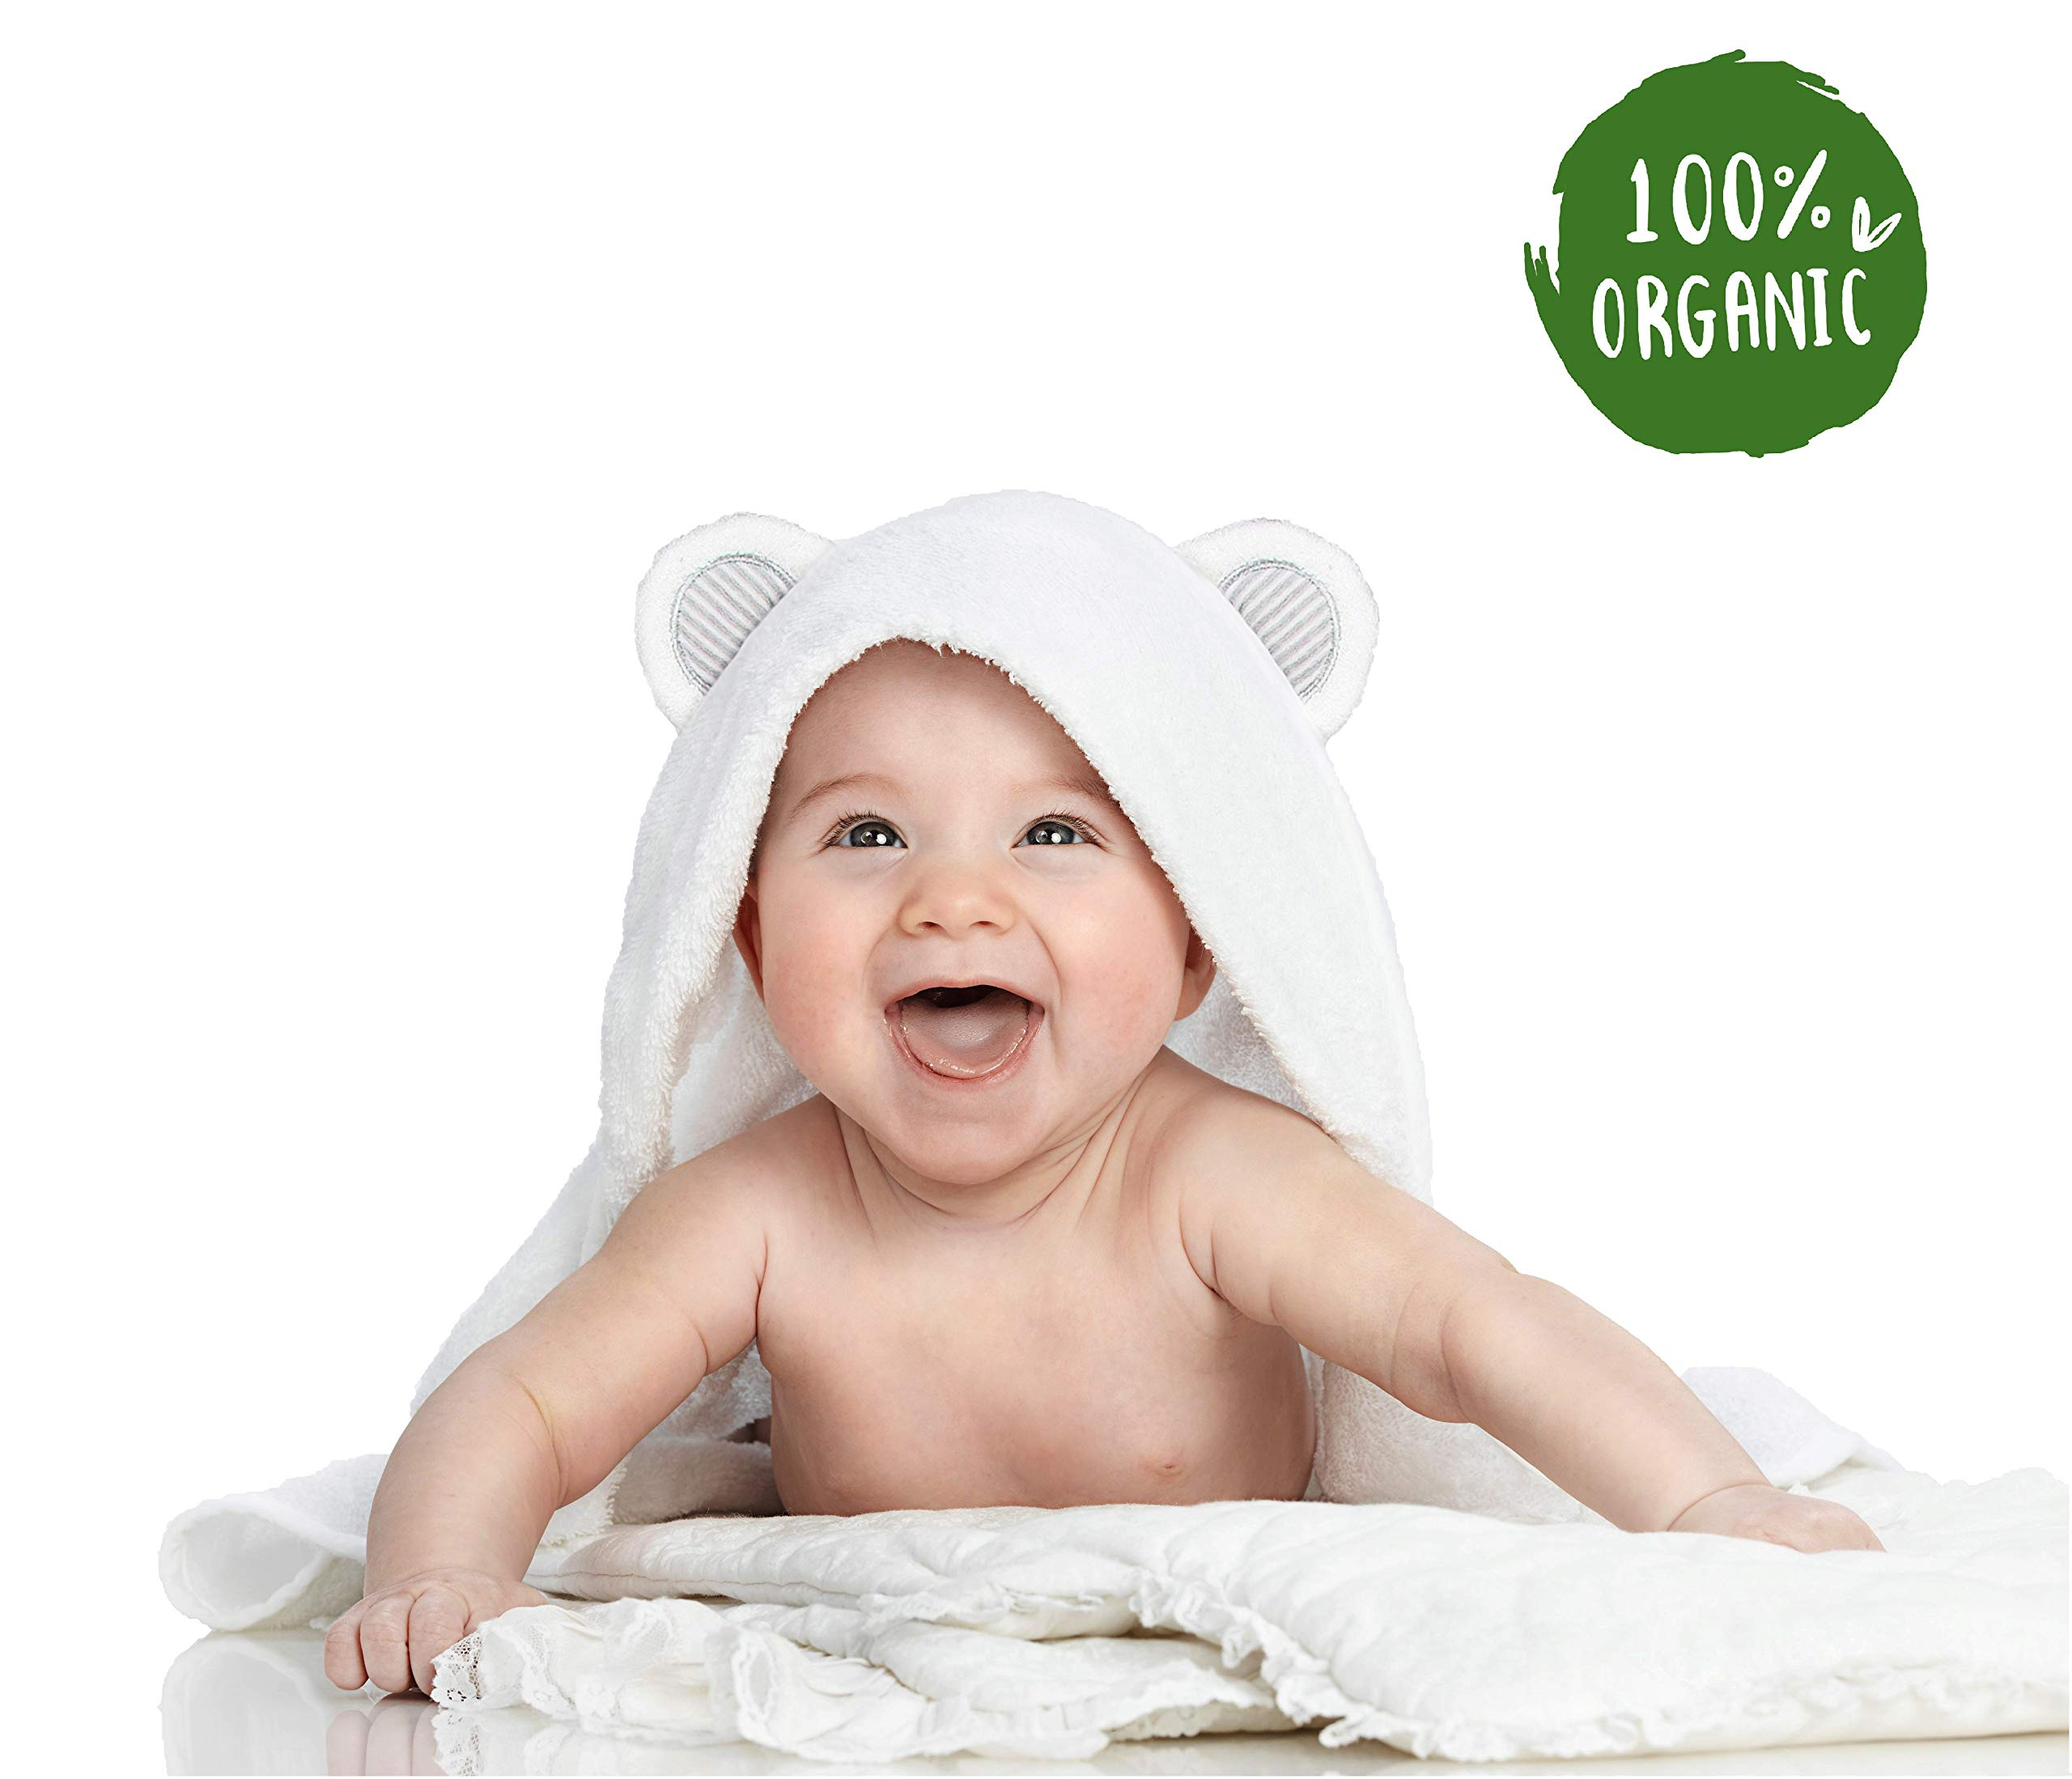 Baby Bath Towel | Organic Bamboo Towel and Washcloth Set | Hypoallergenic | Hooded Baby Towel Set for Boys and Girls | Unisex by Parenting & Children London